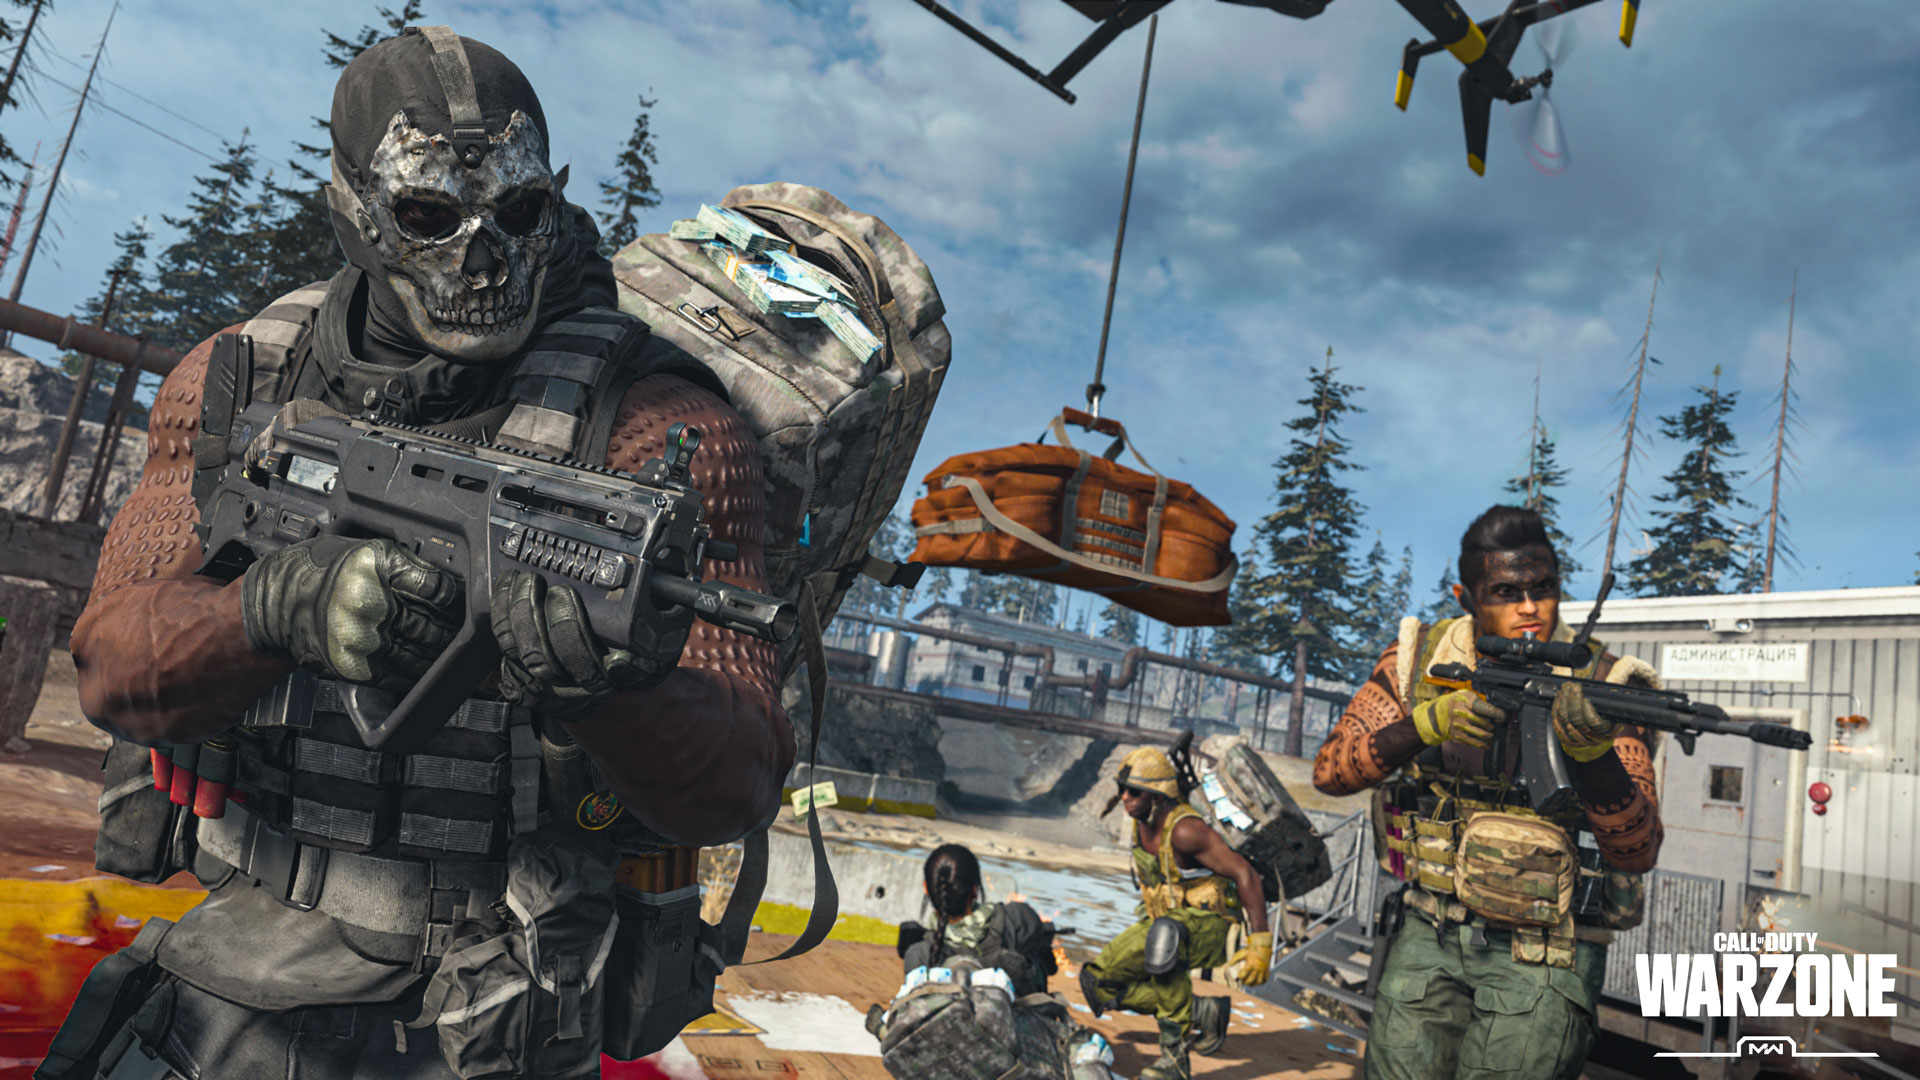 CoD players demand Black Ops features.